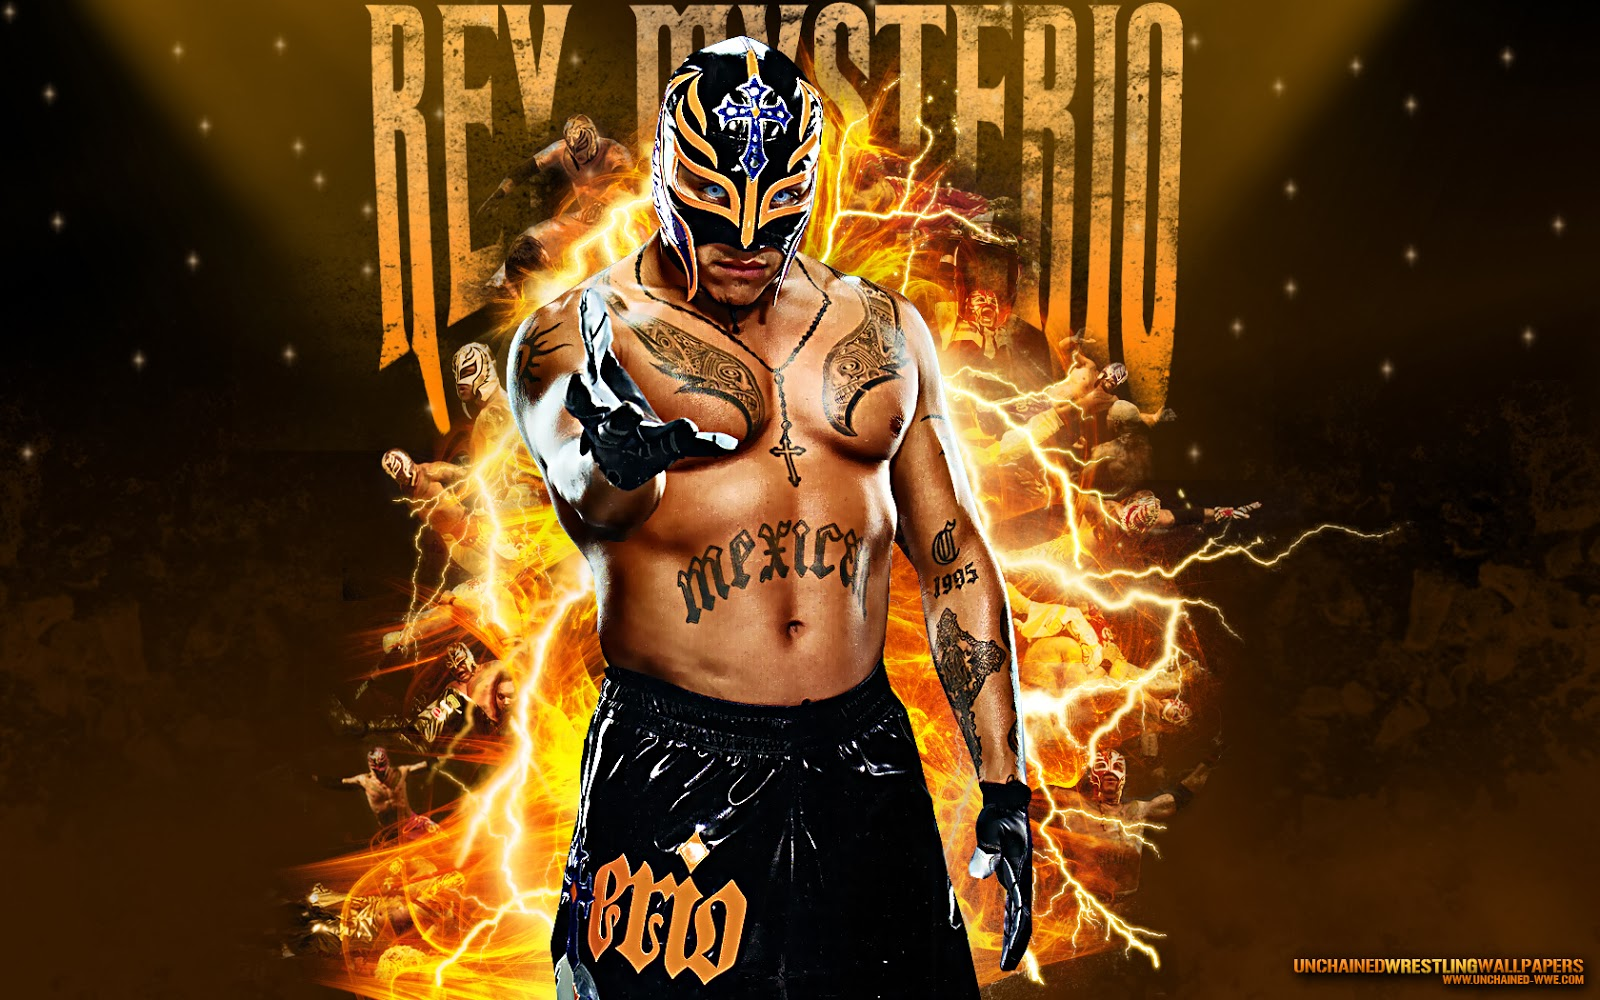 rey mysterio 619 wallpapers beautiful rey mysterio 619